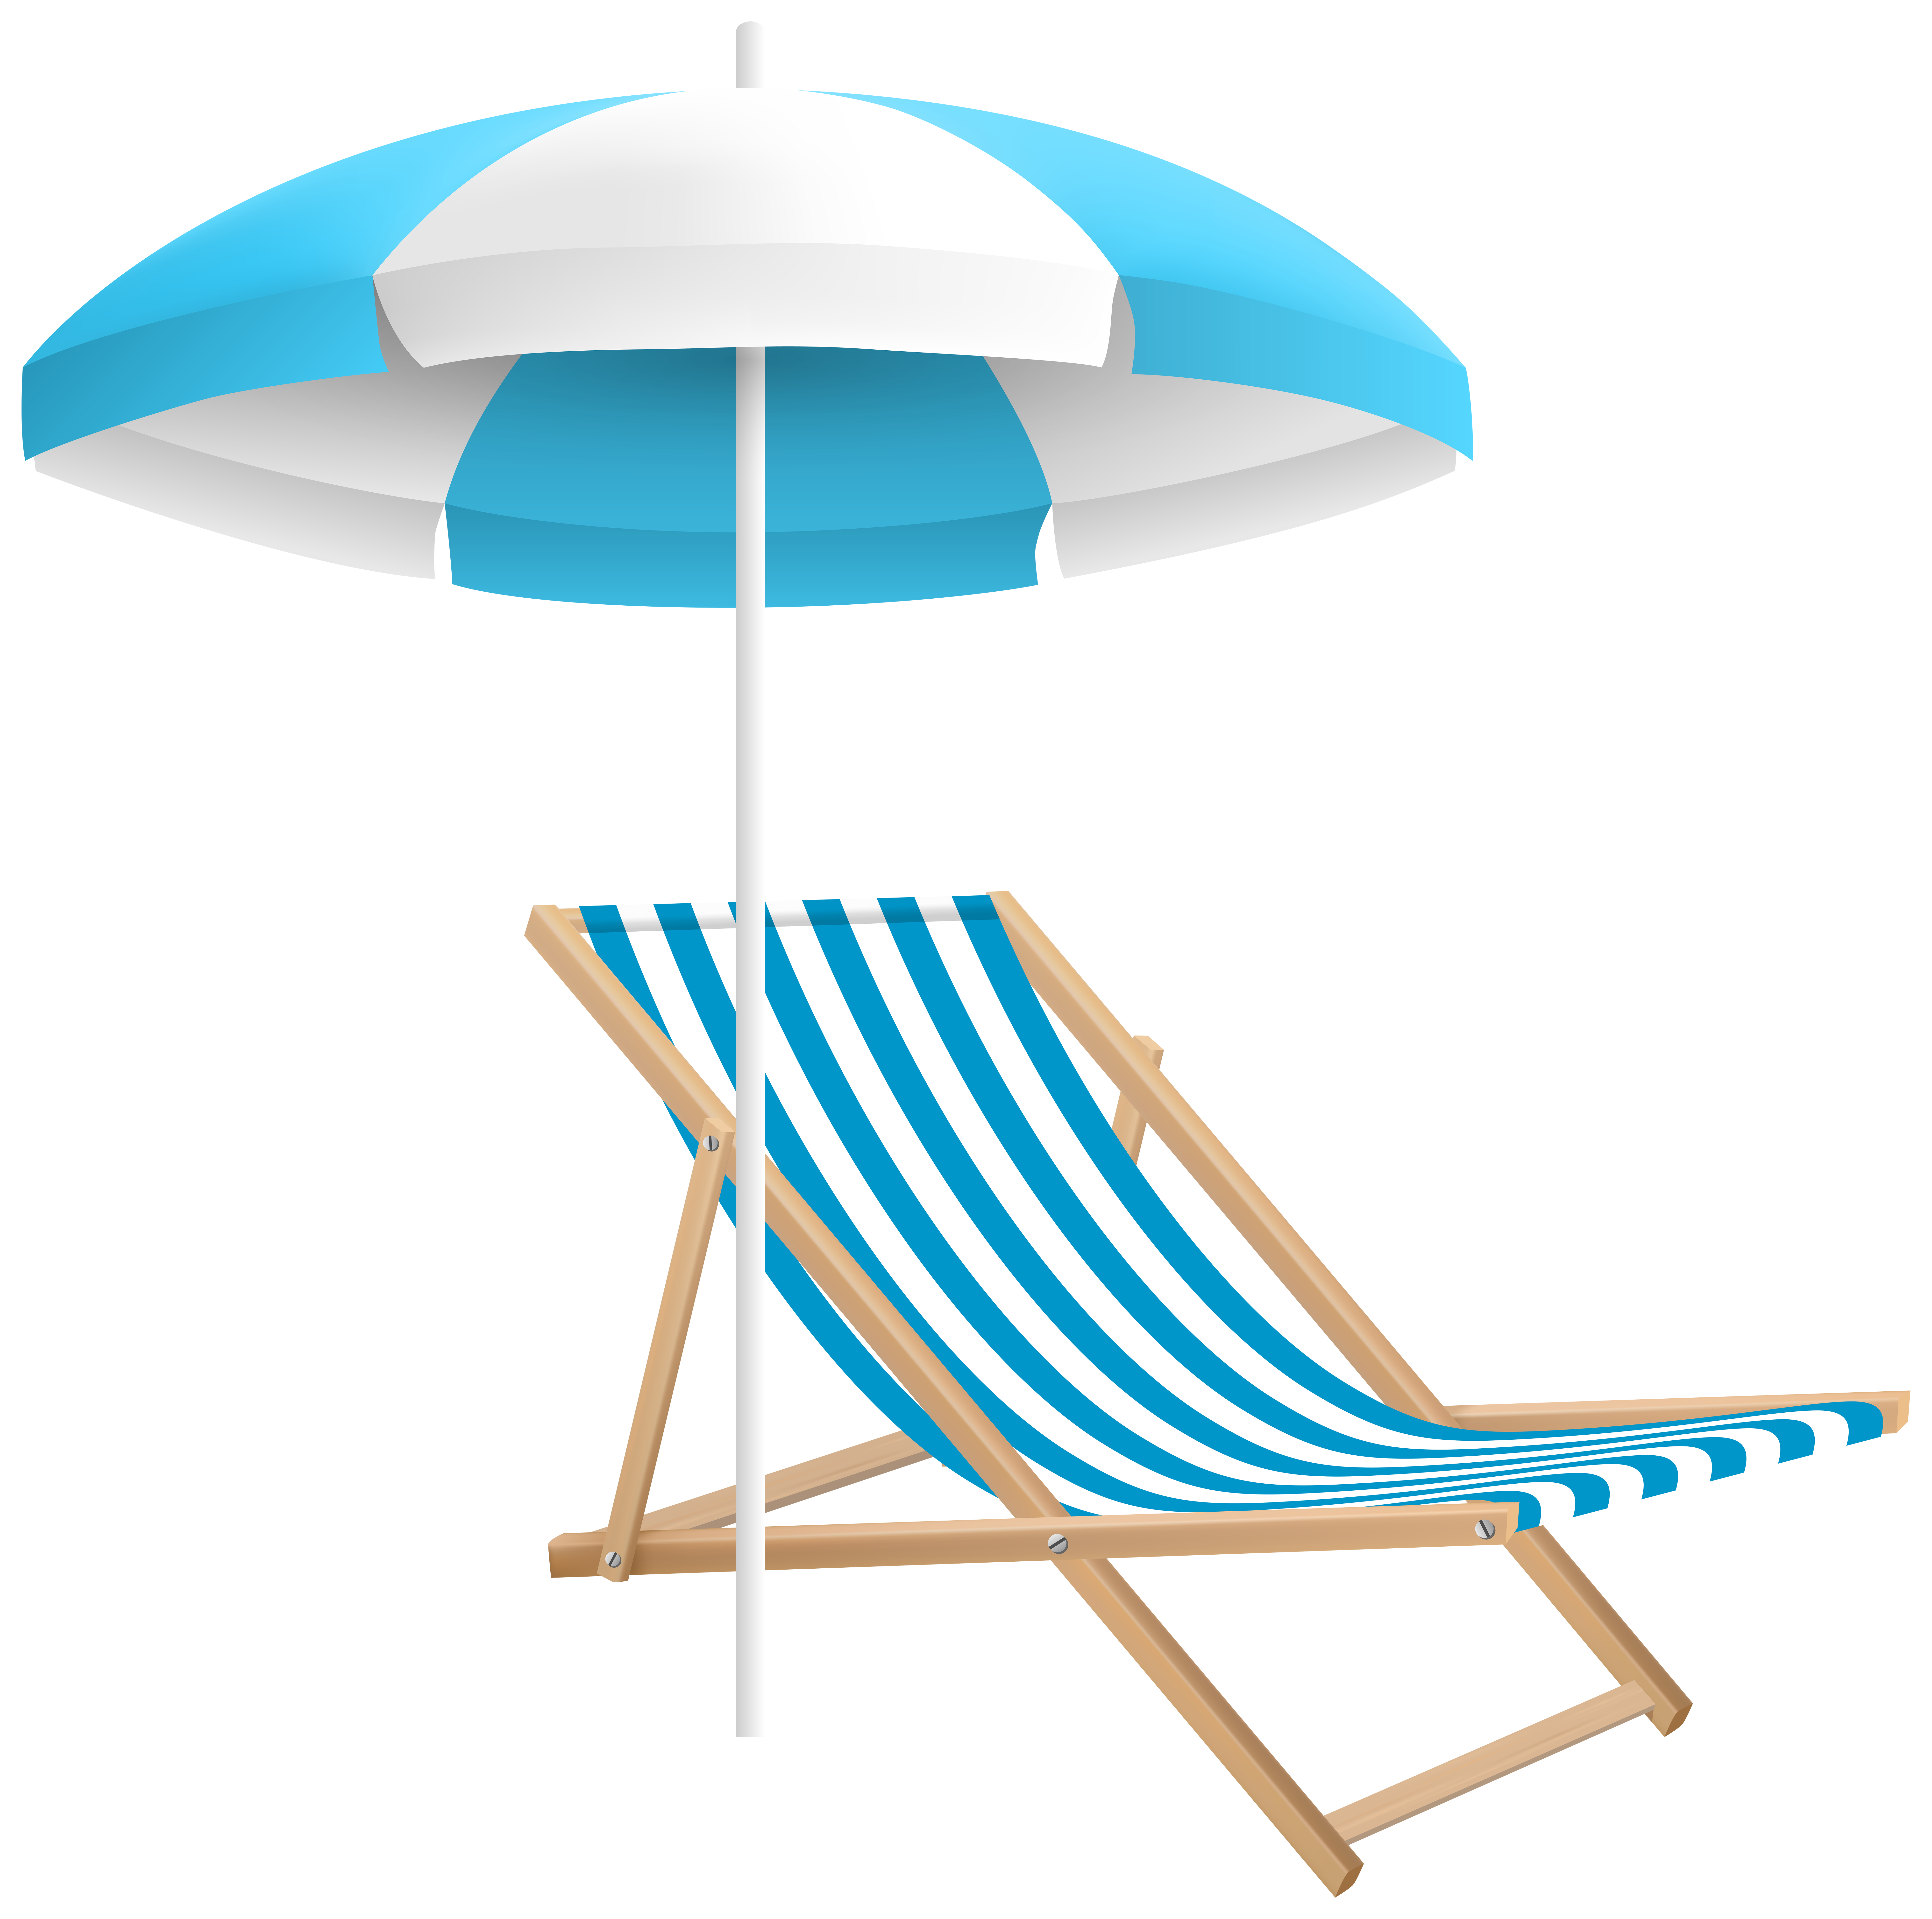 Beach and umbrella png. Clipart chair sea